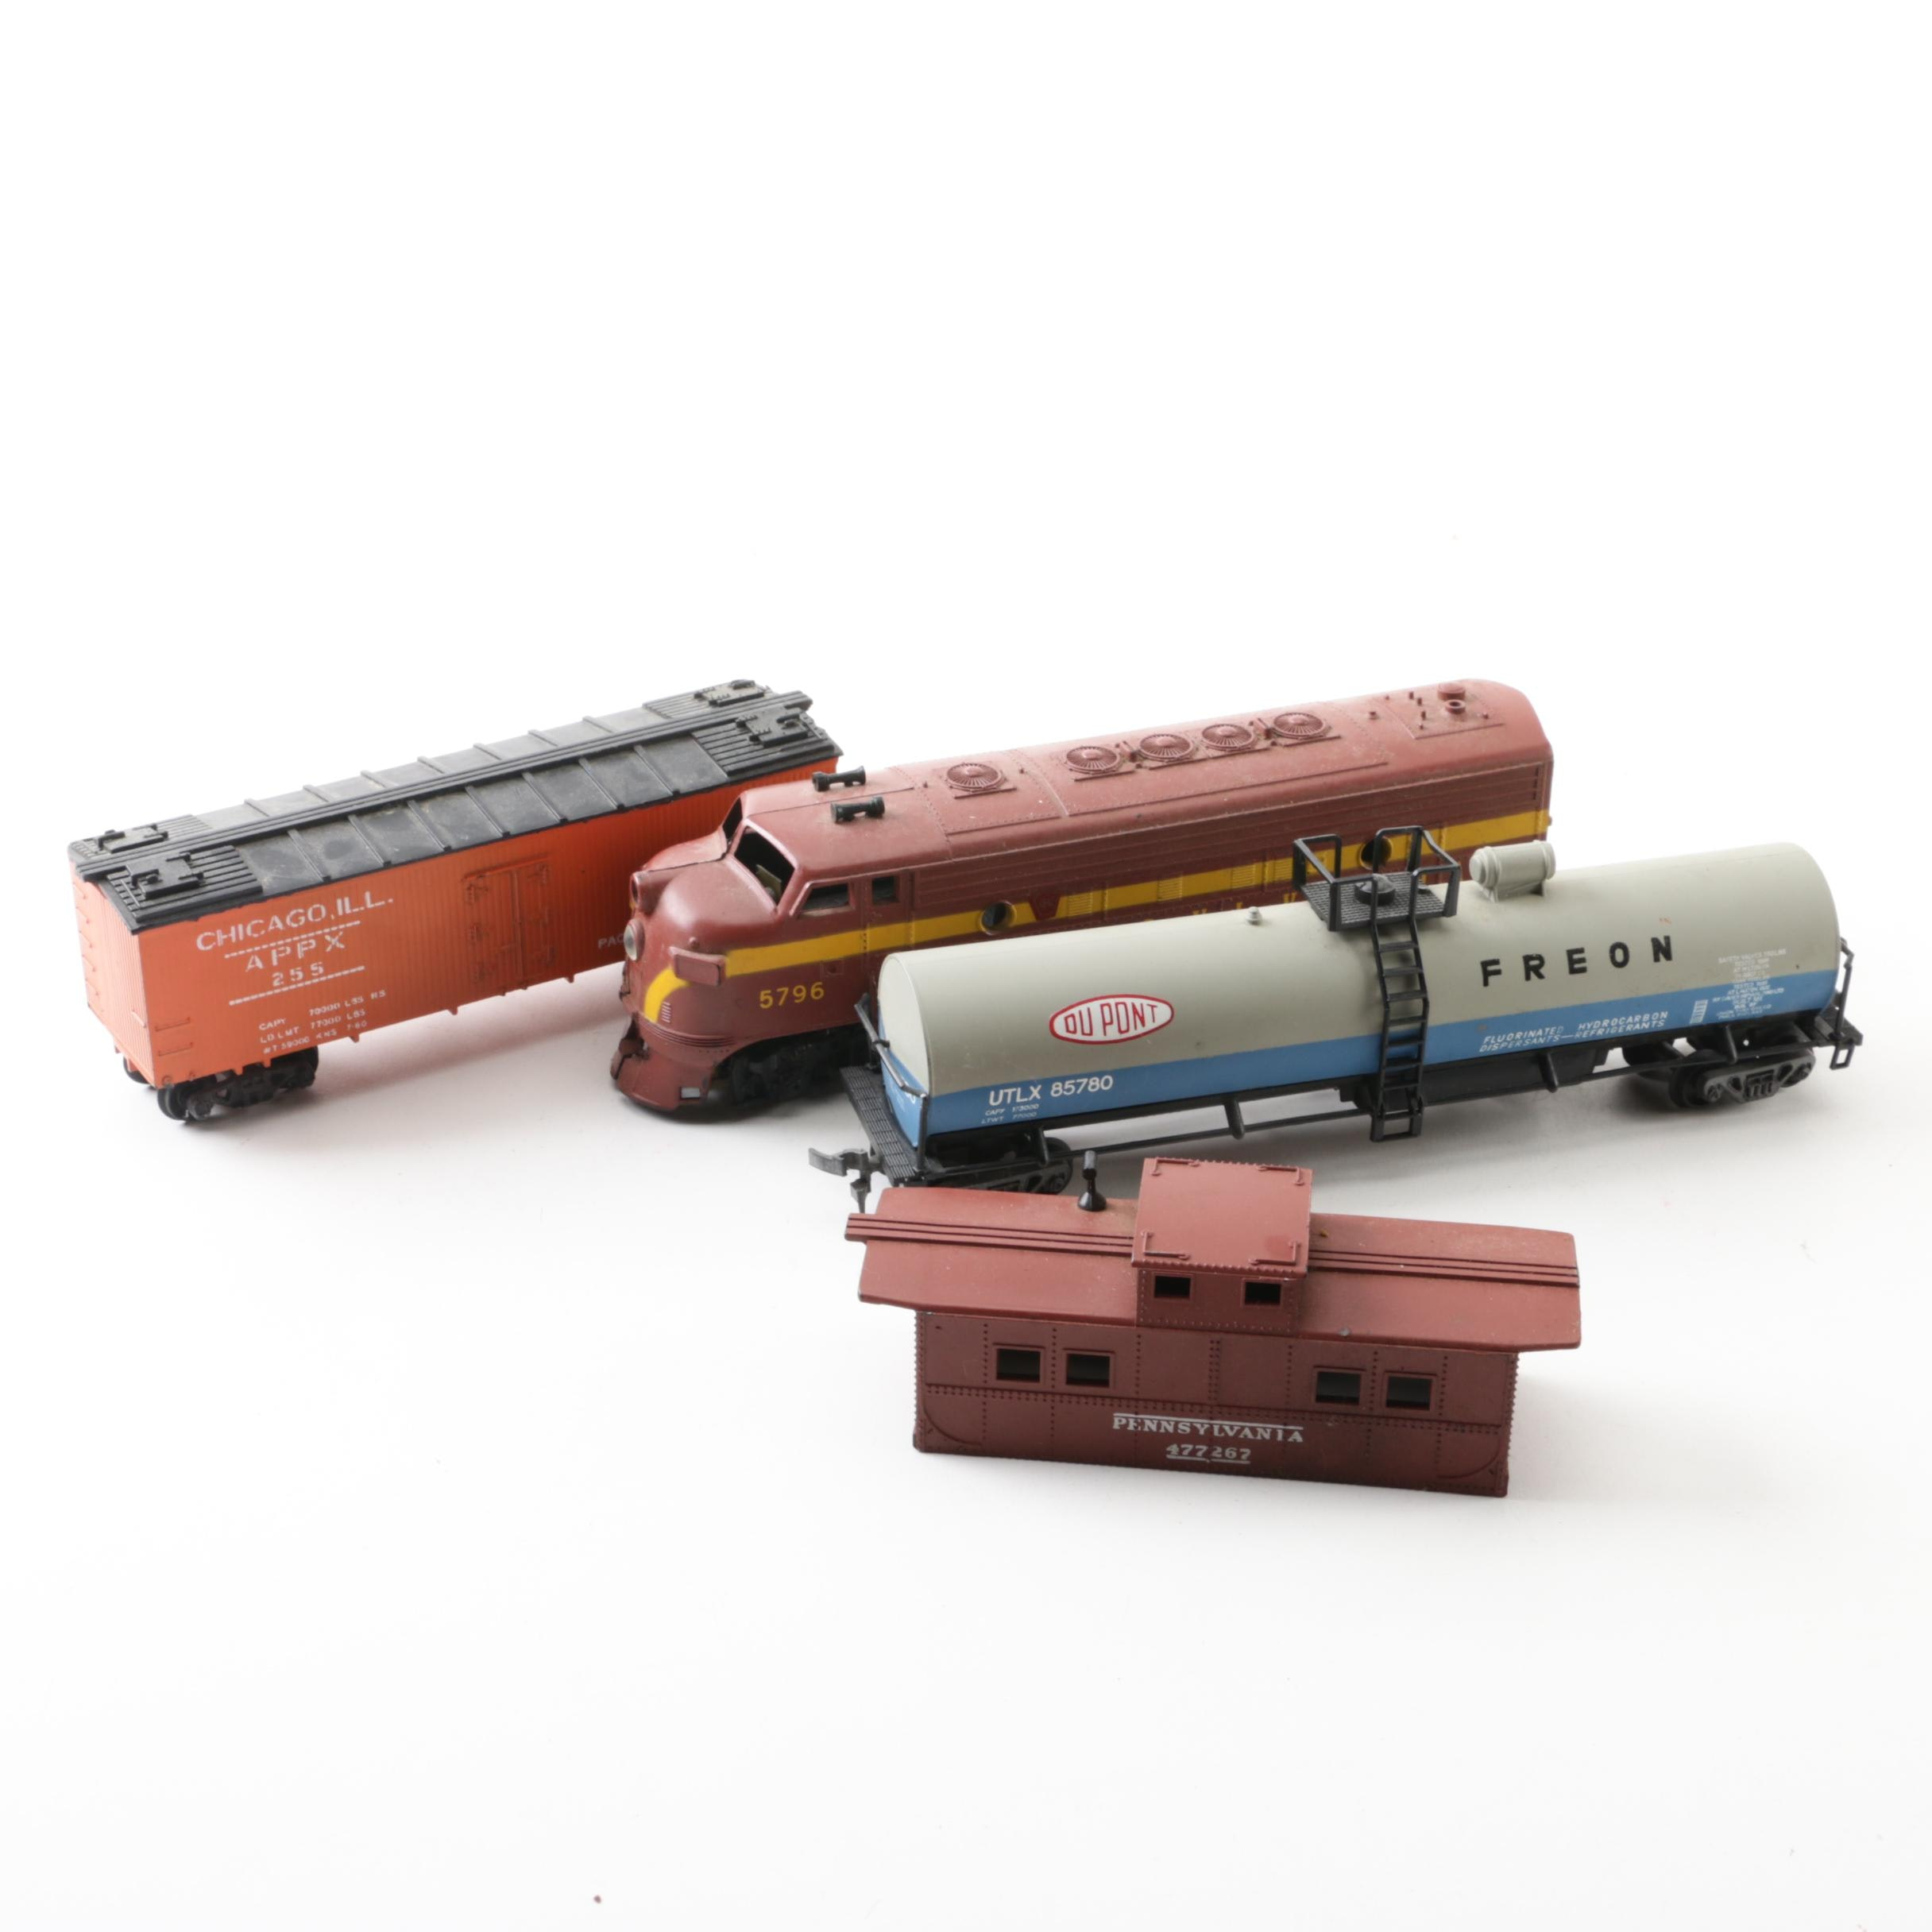 HO Scale Train Cars Including Varney